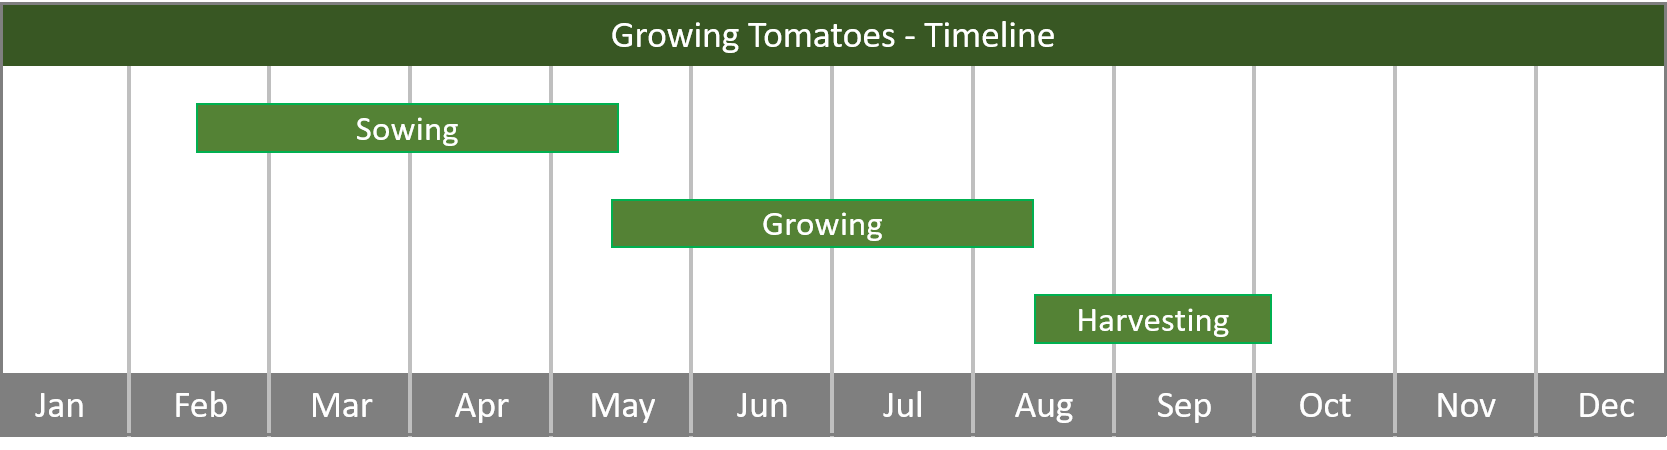 how to grow tomatoes from seed to harvest timeline